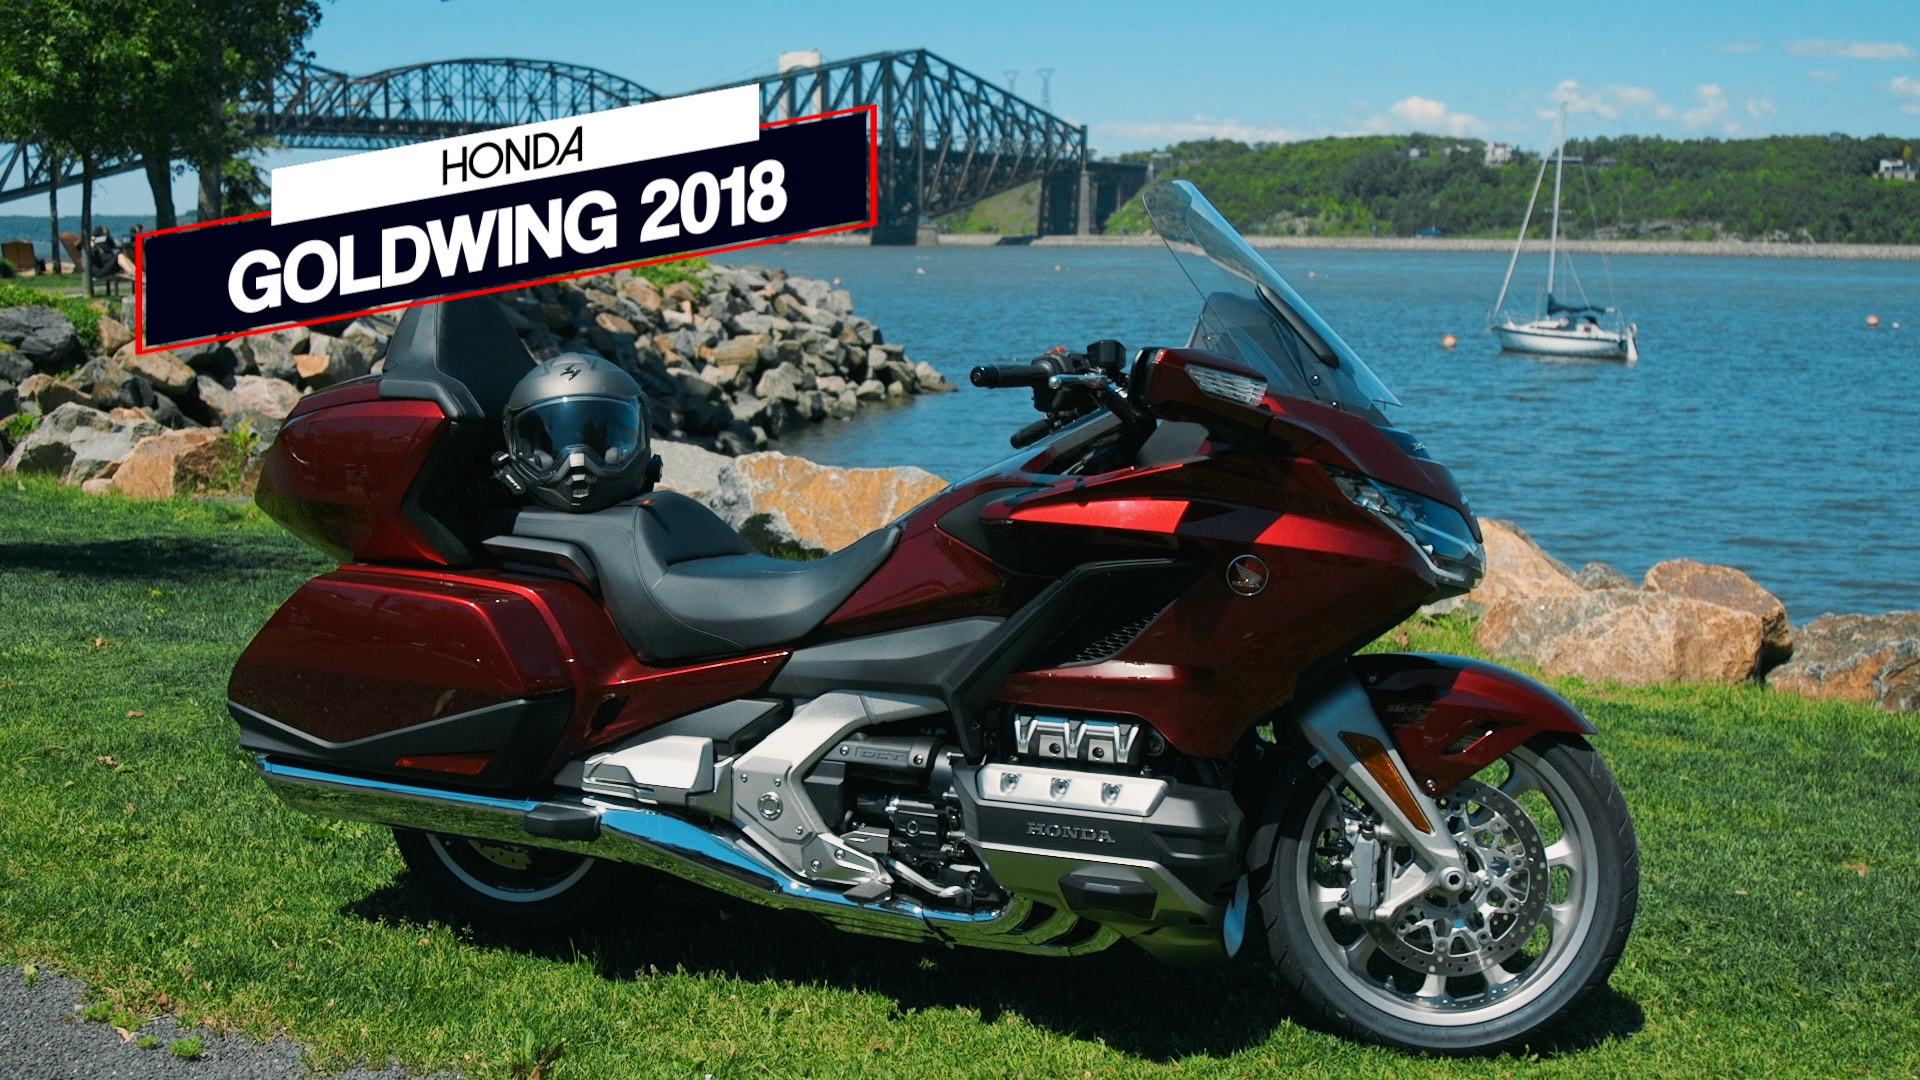 Rencontre goldwing 2018